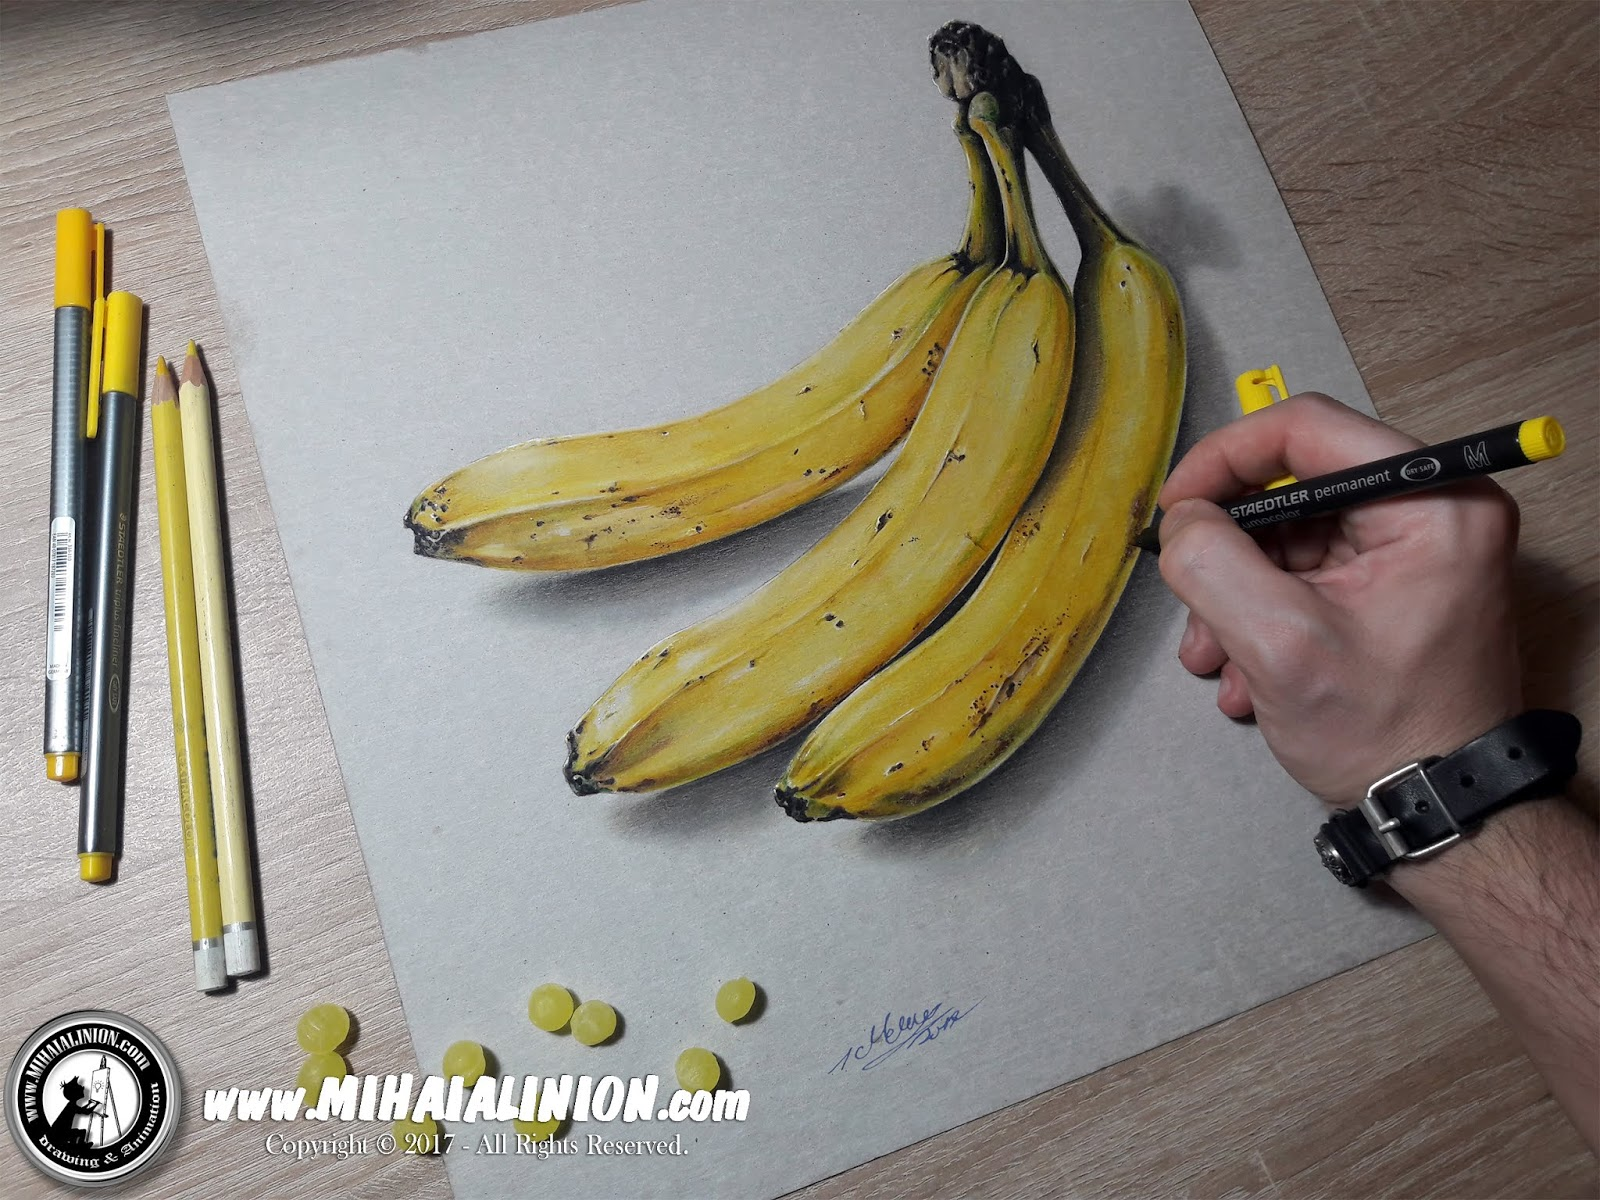 Drawing Bananas, Drawing Fruits, Drawing Yellow Banana, Bananas, fruit illustration, wild bananas, funny bananas, painting bananas, jungle bananas, monkey bananas, How to draw a banana, banana pencil drawing, illustrations by mihai alin ion, MAI Comics, Mihai Alin Ion, art by mihai alin ion, how to draw, artselfie, drawing ideas, free drawing lessons, drawing tutorial, art, dessin, disegno, dibujo, drawing for kids, drawing, illustration, painting, design, realistic 3d art, coloured pencils, www.mihaialinion.com, 2018, pencil drawing, tempera, acrilics paint, marker, gouache painting, mixed media, comics, comic book, caricature, portrait, cum sa desenezi, caricaturi mihai alin ion, caricaturi si portrete  la comanda, eveniment caricaturi, caricaturi la nunta, caricaturi la botez, caricaturi la majorat, desene pe pereti, desene pentru copii, ilustratie carte, benzi desenate, caricaturi, portrete, comanda caricaturi